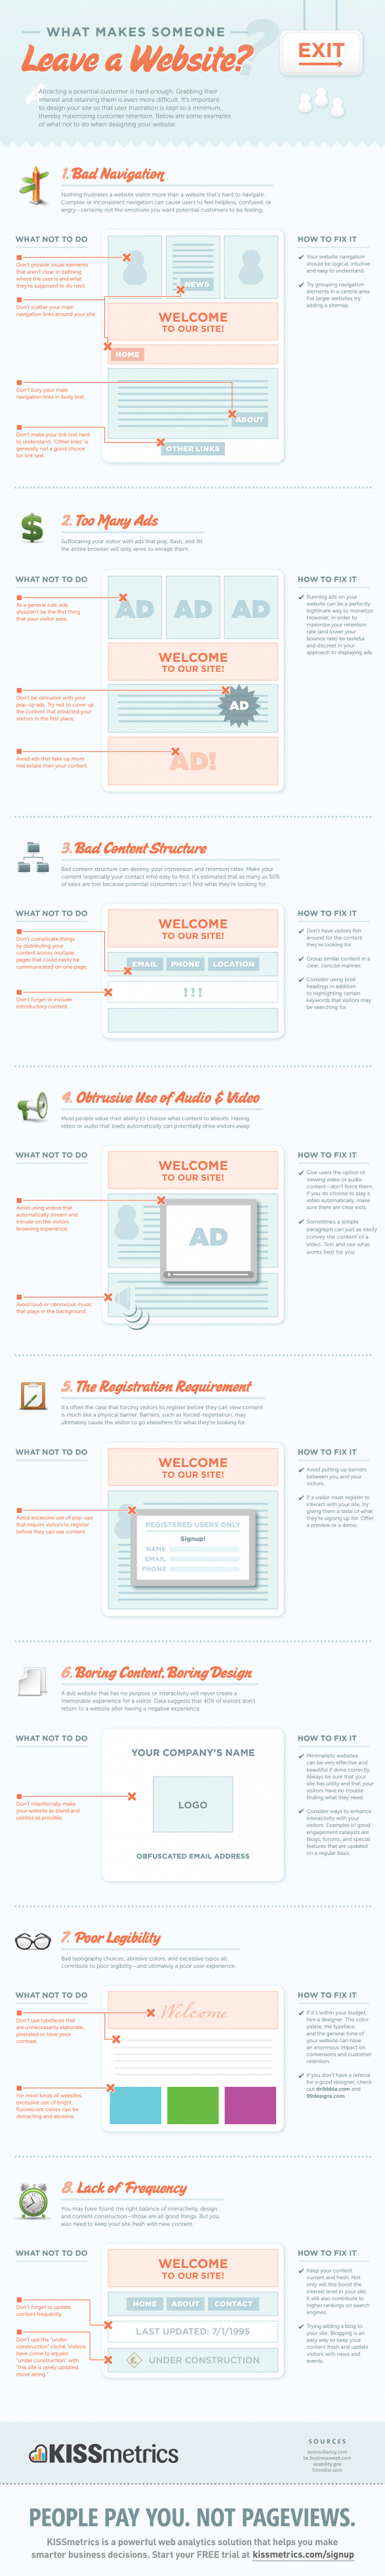 website-design-tips-infographic